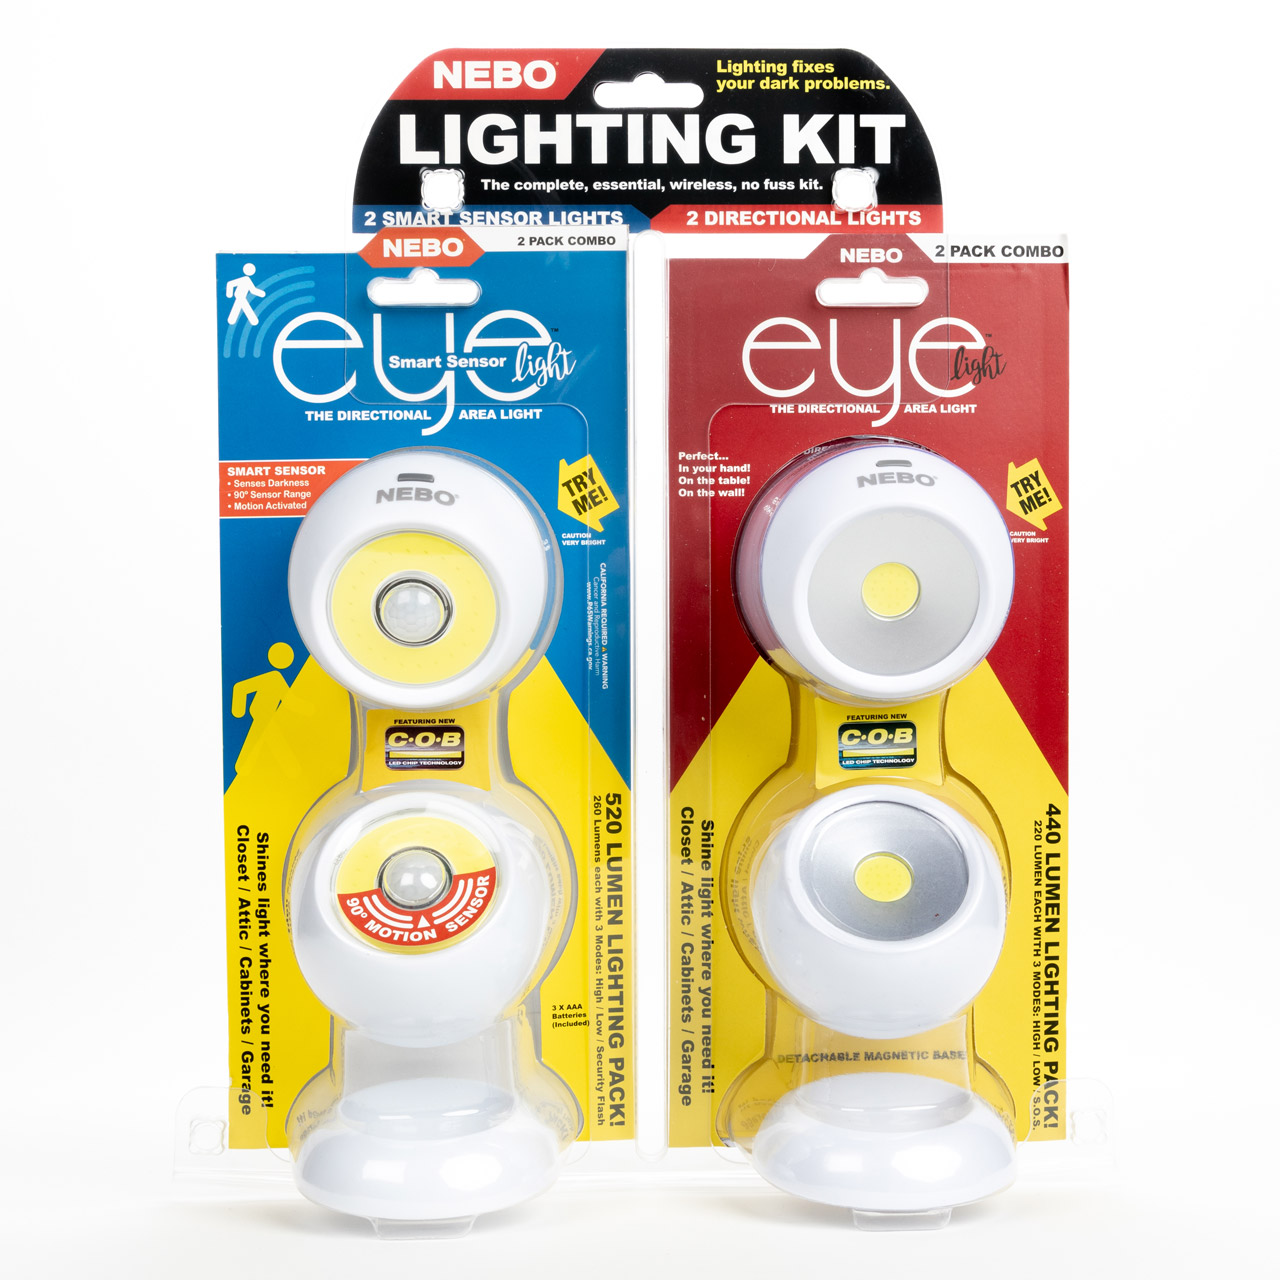 EYE Smart Sensor Lighting Kit